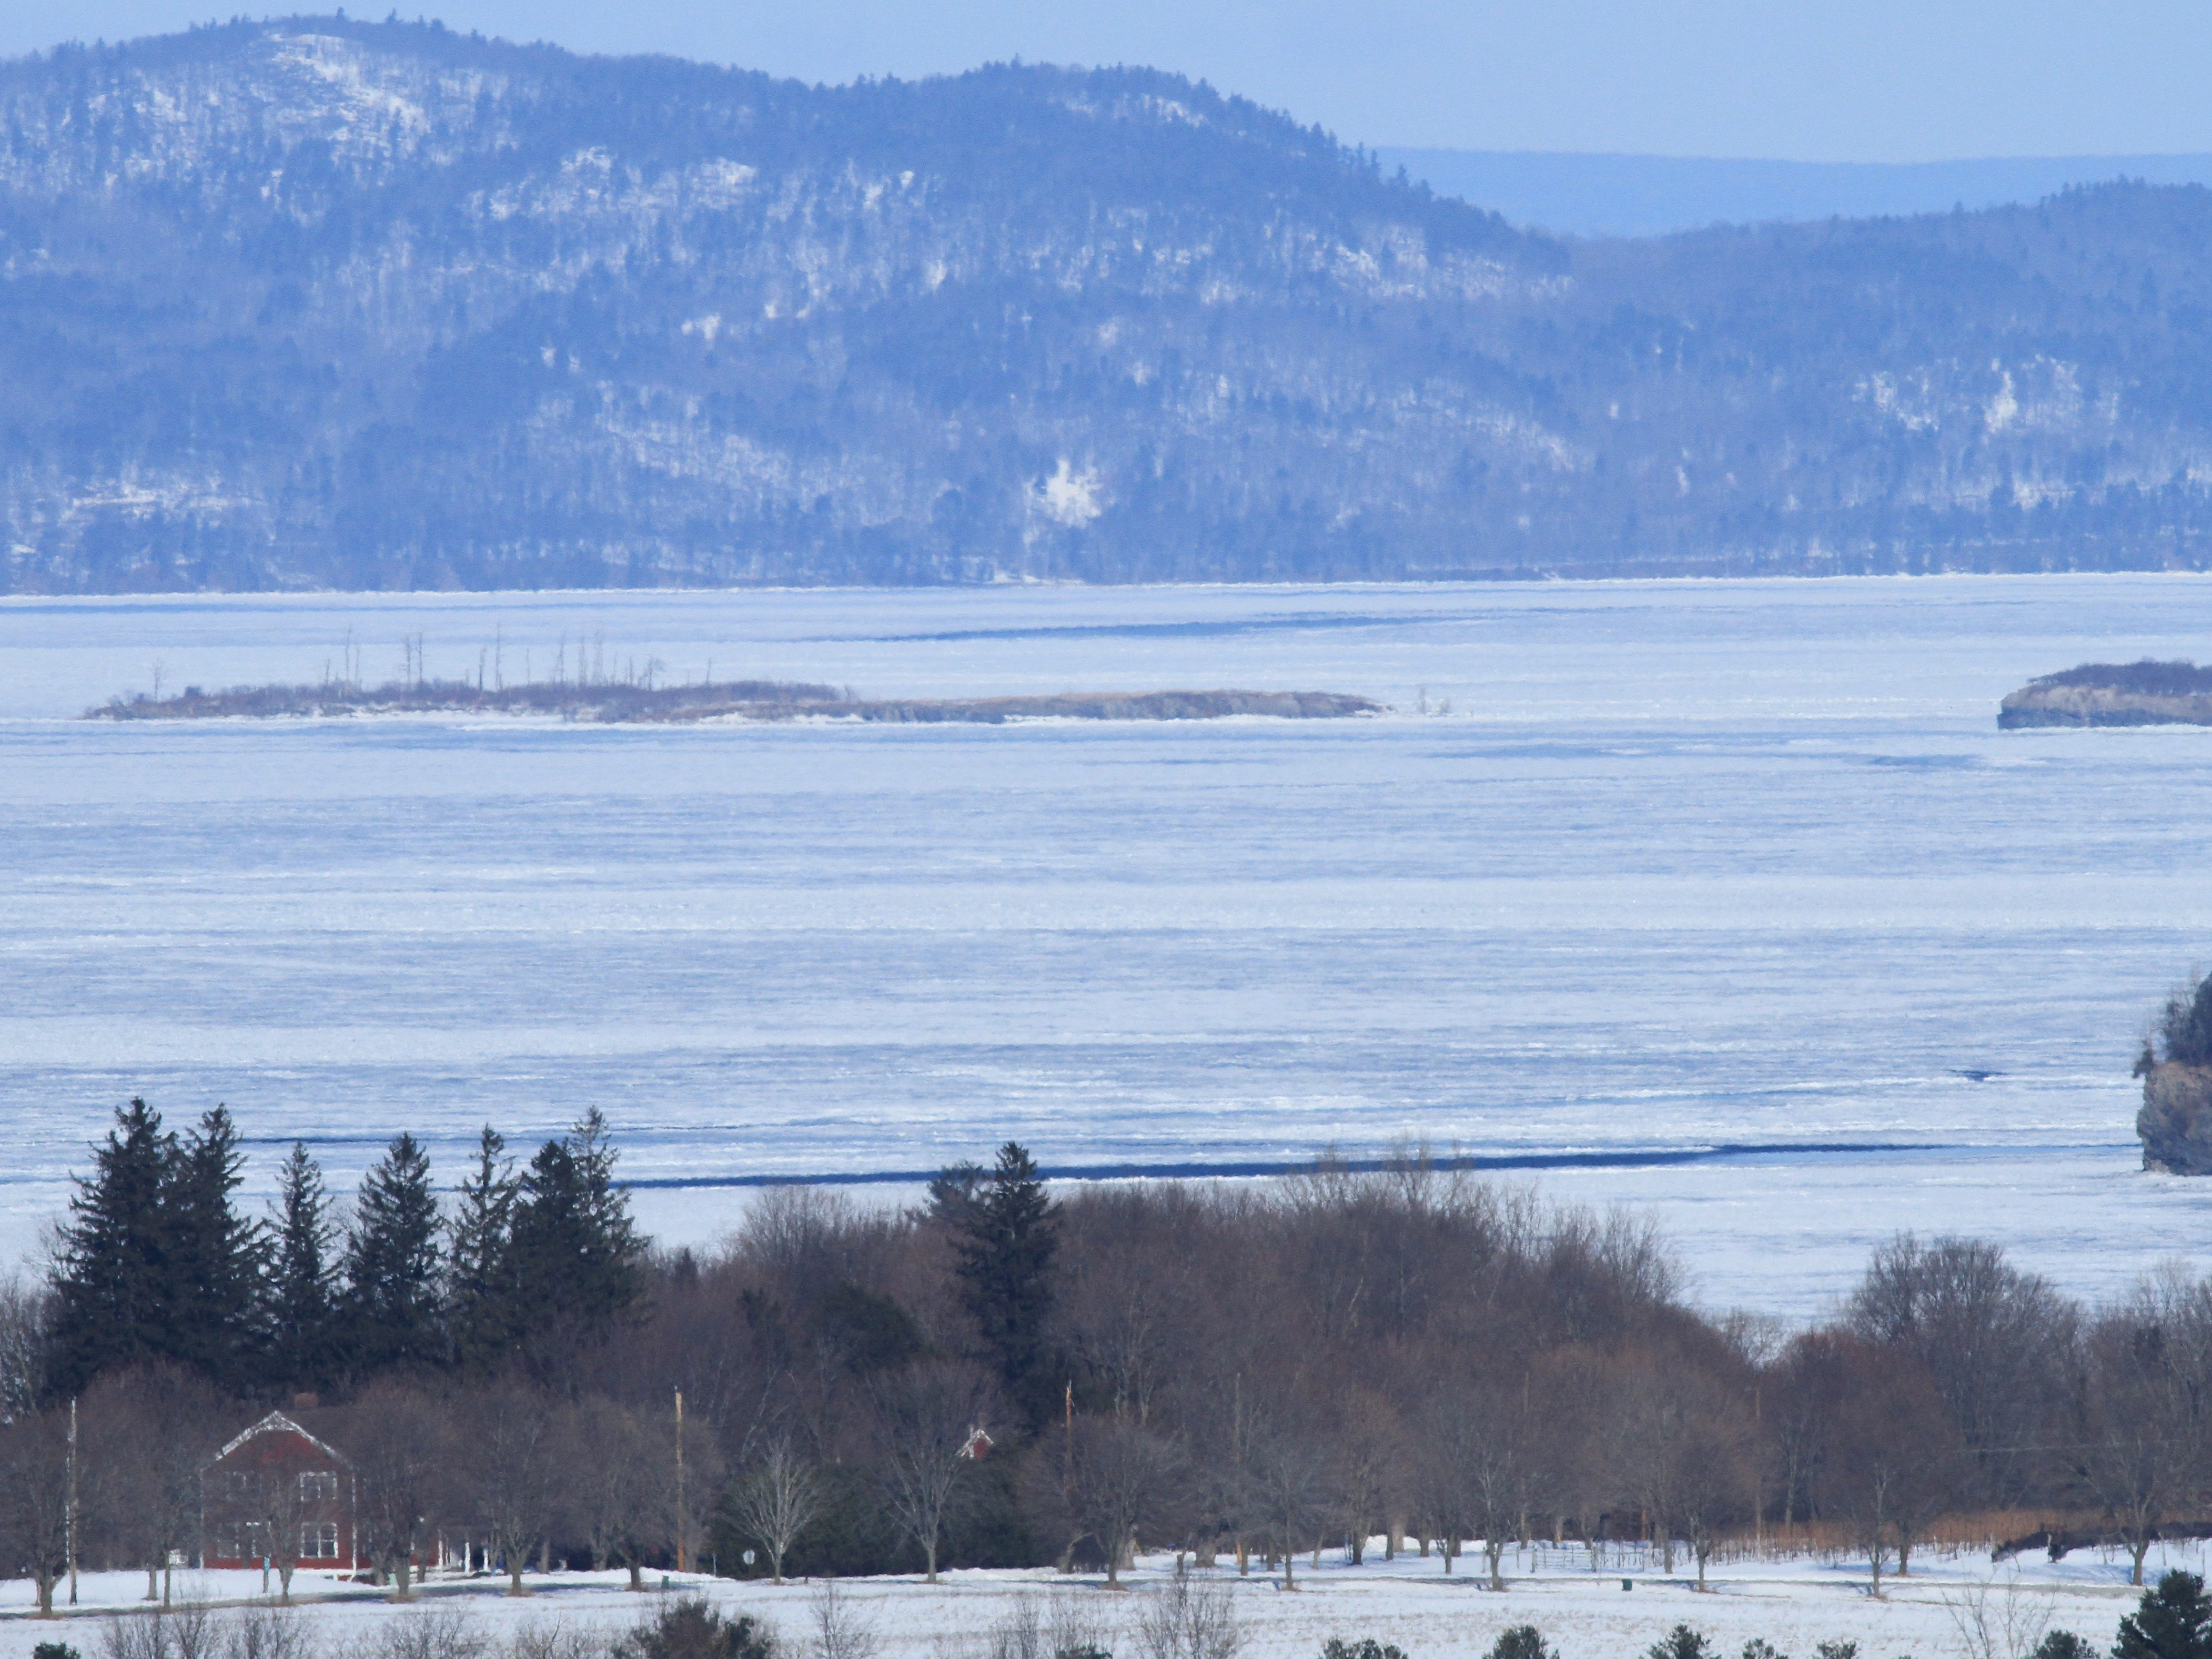 A view of Lake Champlain's multi-textured ice (and perhaps some open water), looking west from Shelburne on March 6, 2019.